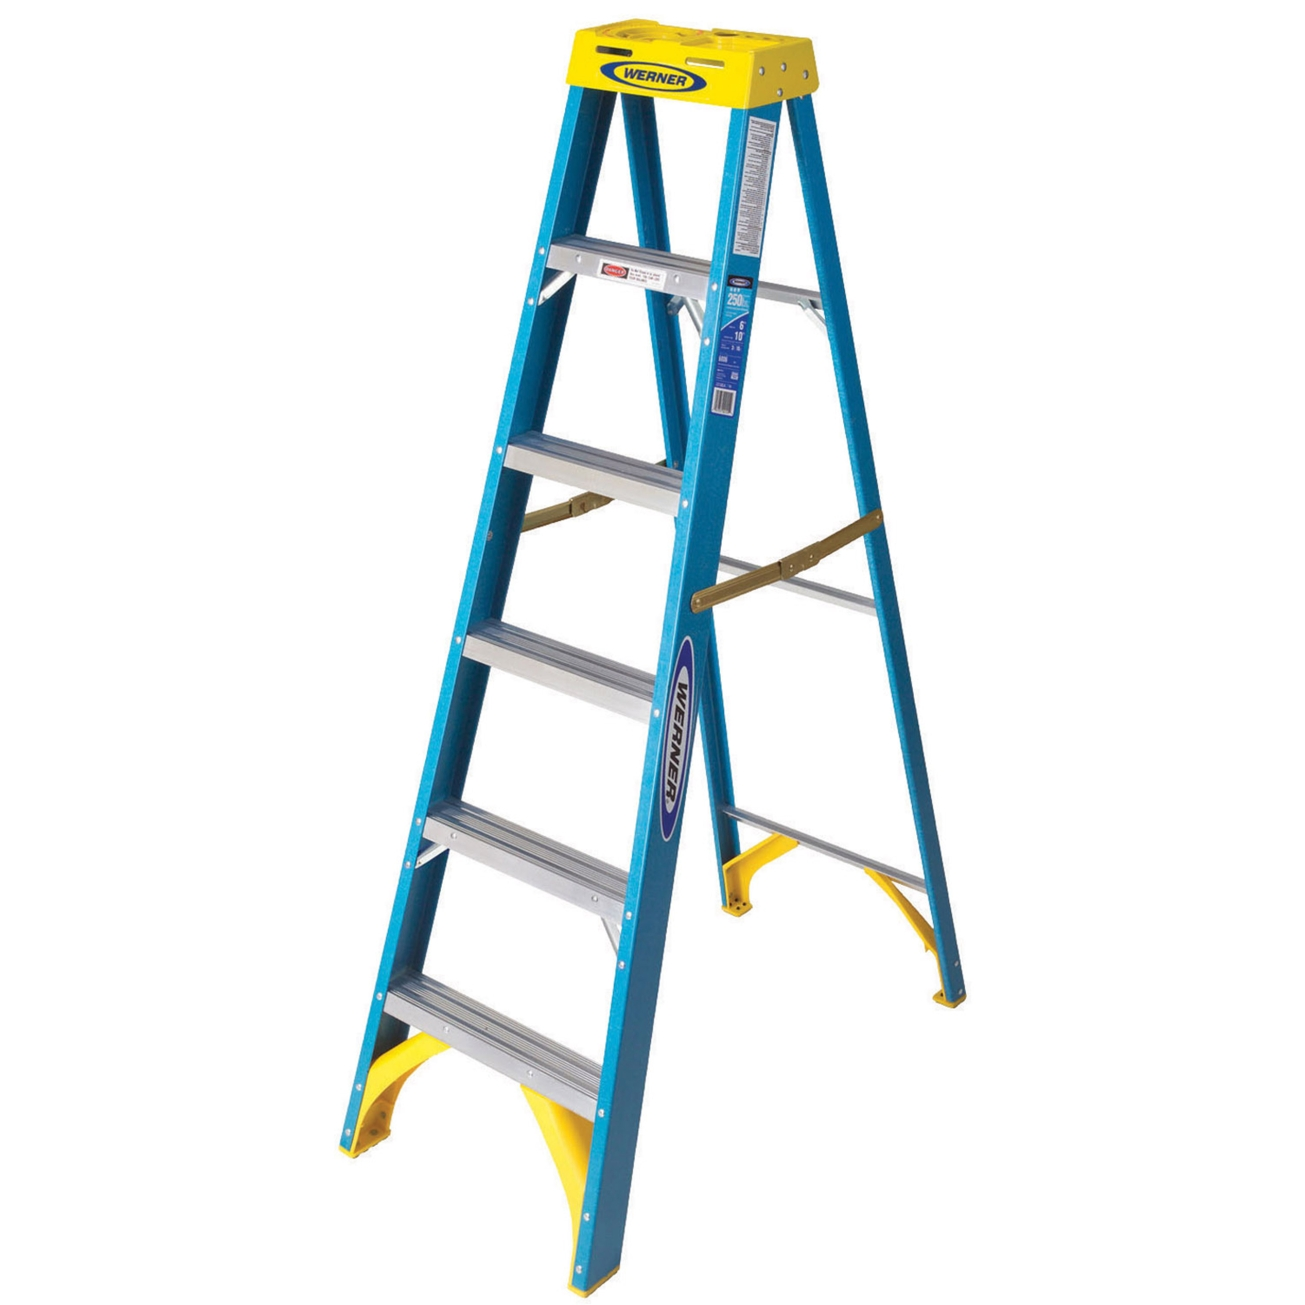 Ladder clipart 8 step. Free download best on